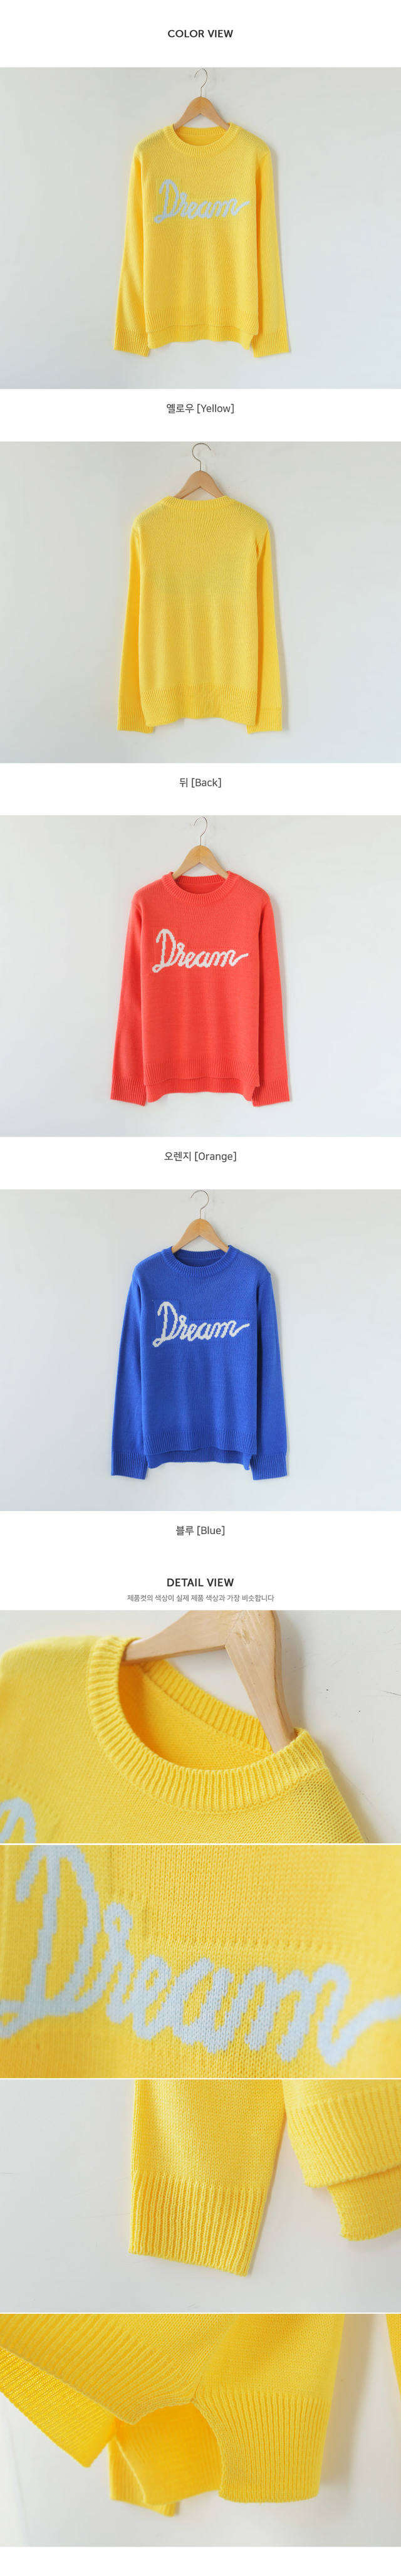 Dream Lettering Round Knit